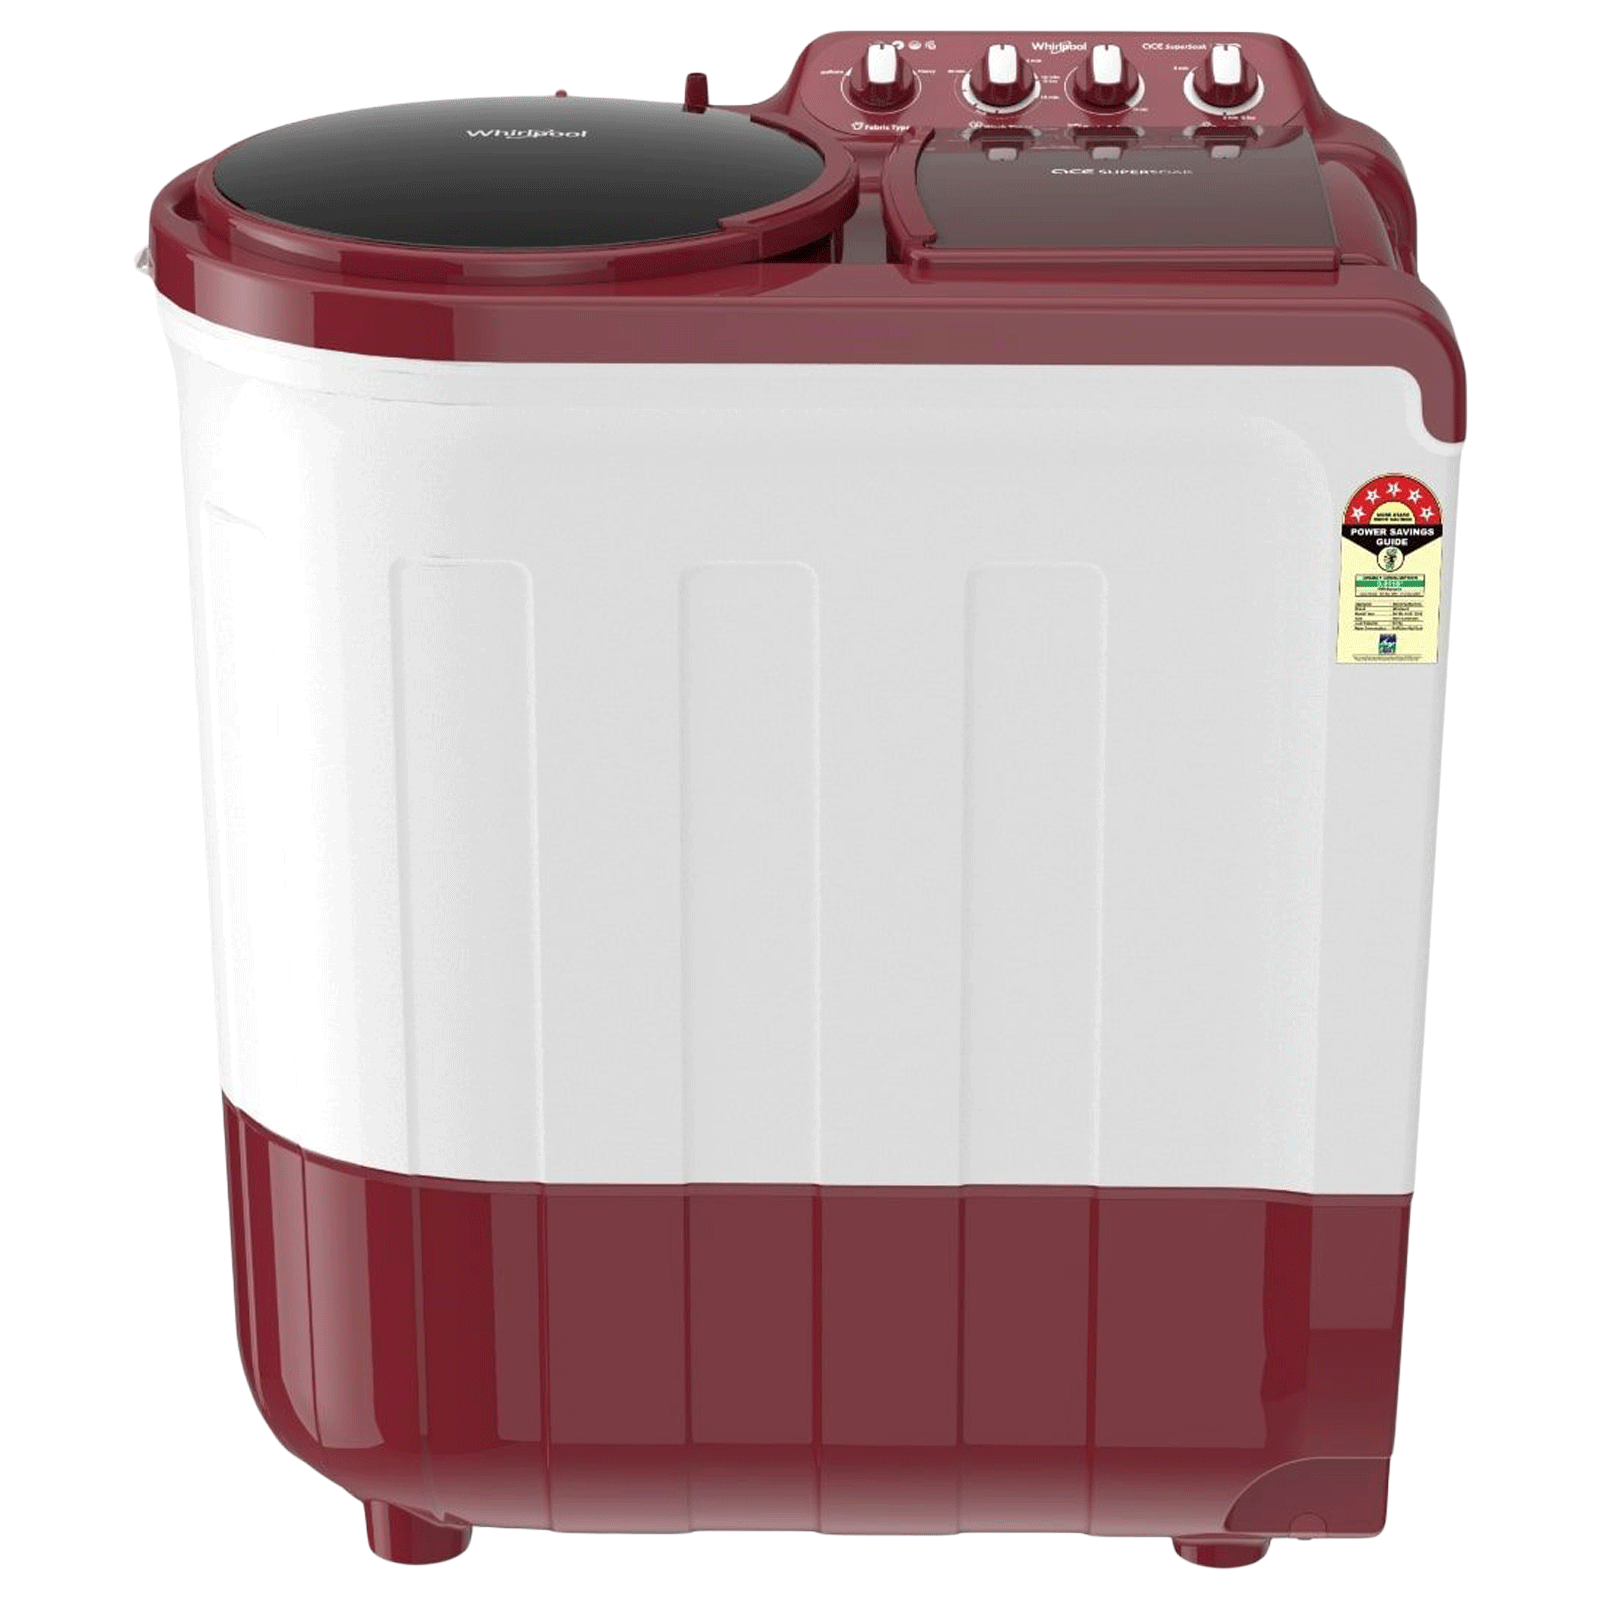 Whirlpool Ace 8 kg 5 Star Semi-Automatic Top Load Washing Machine(Supersoak, ACE 8.0 SUPERSOAK, Coral Red)_1